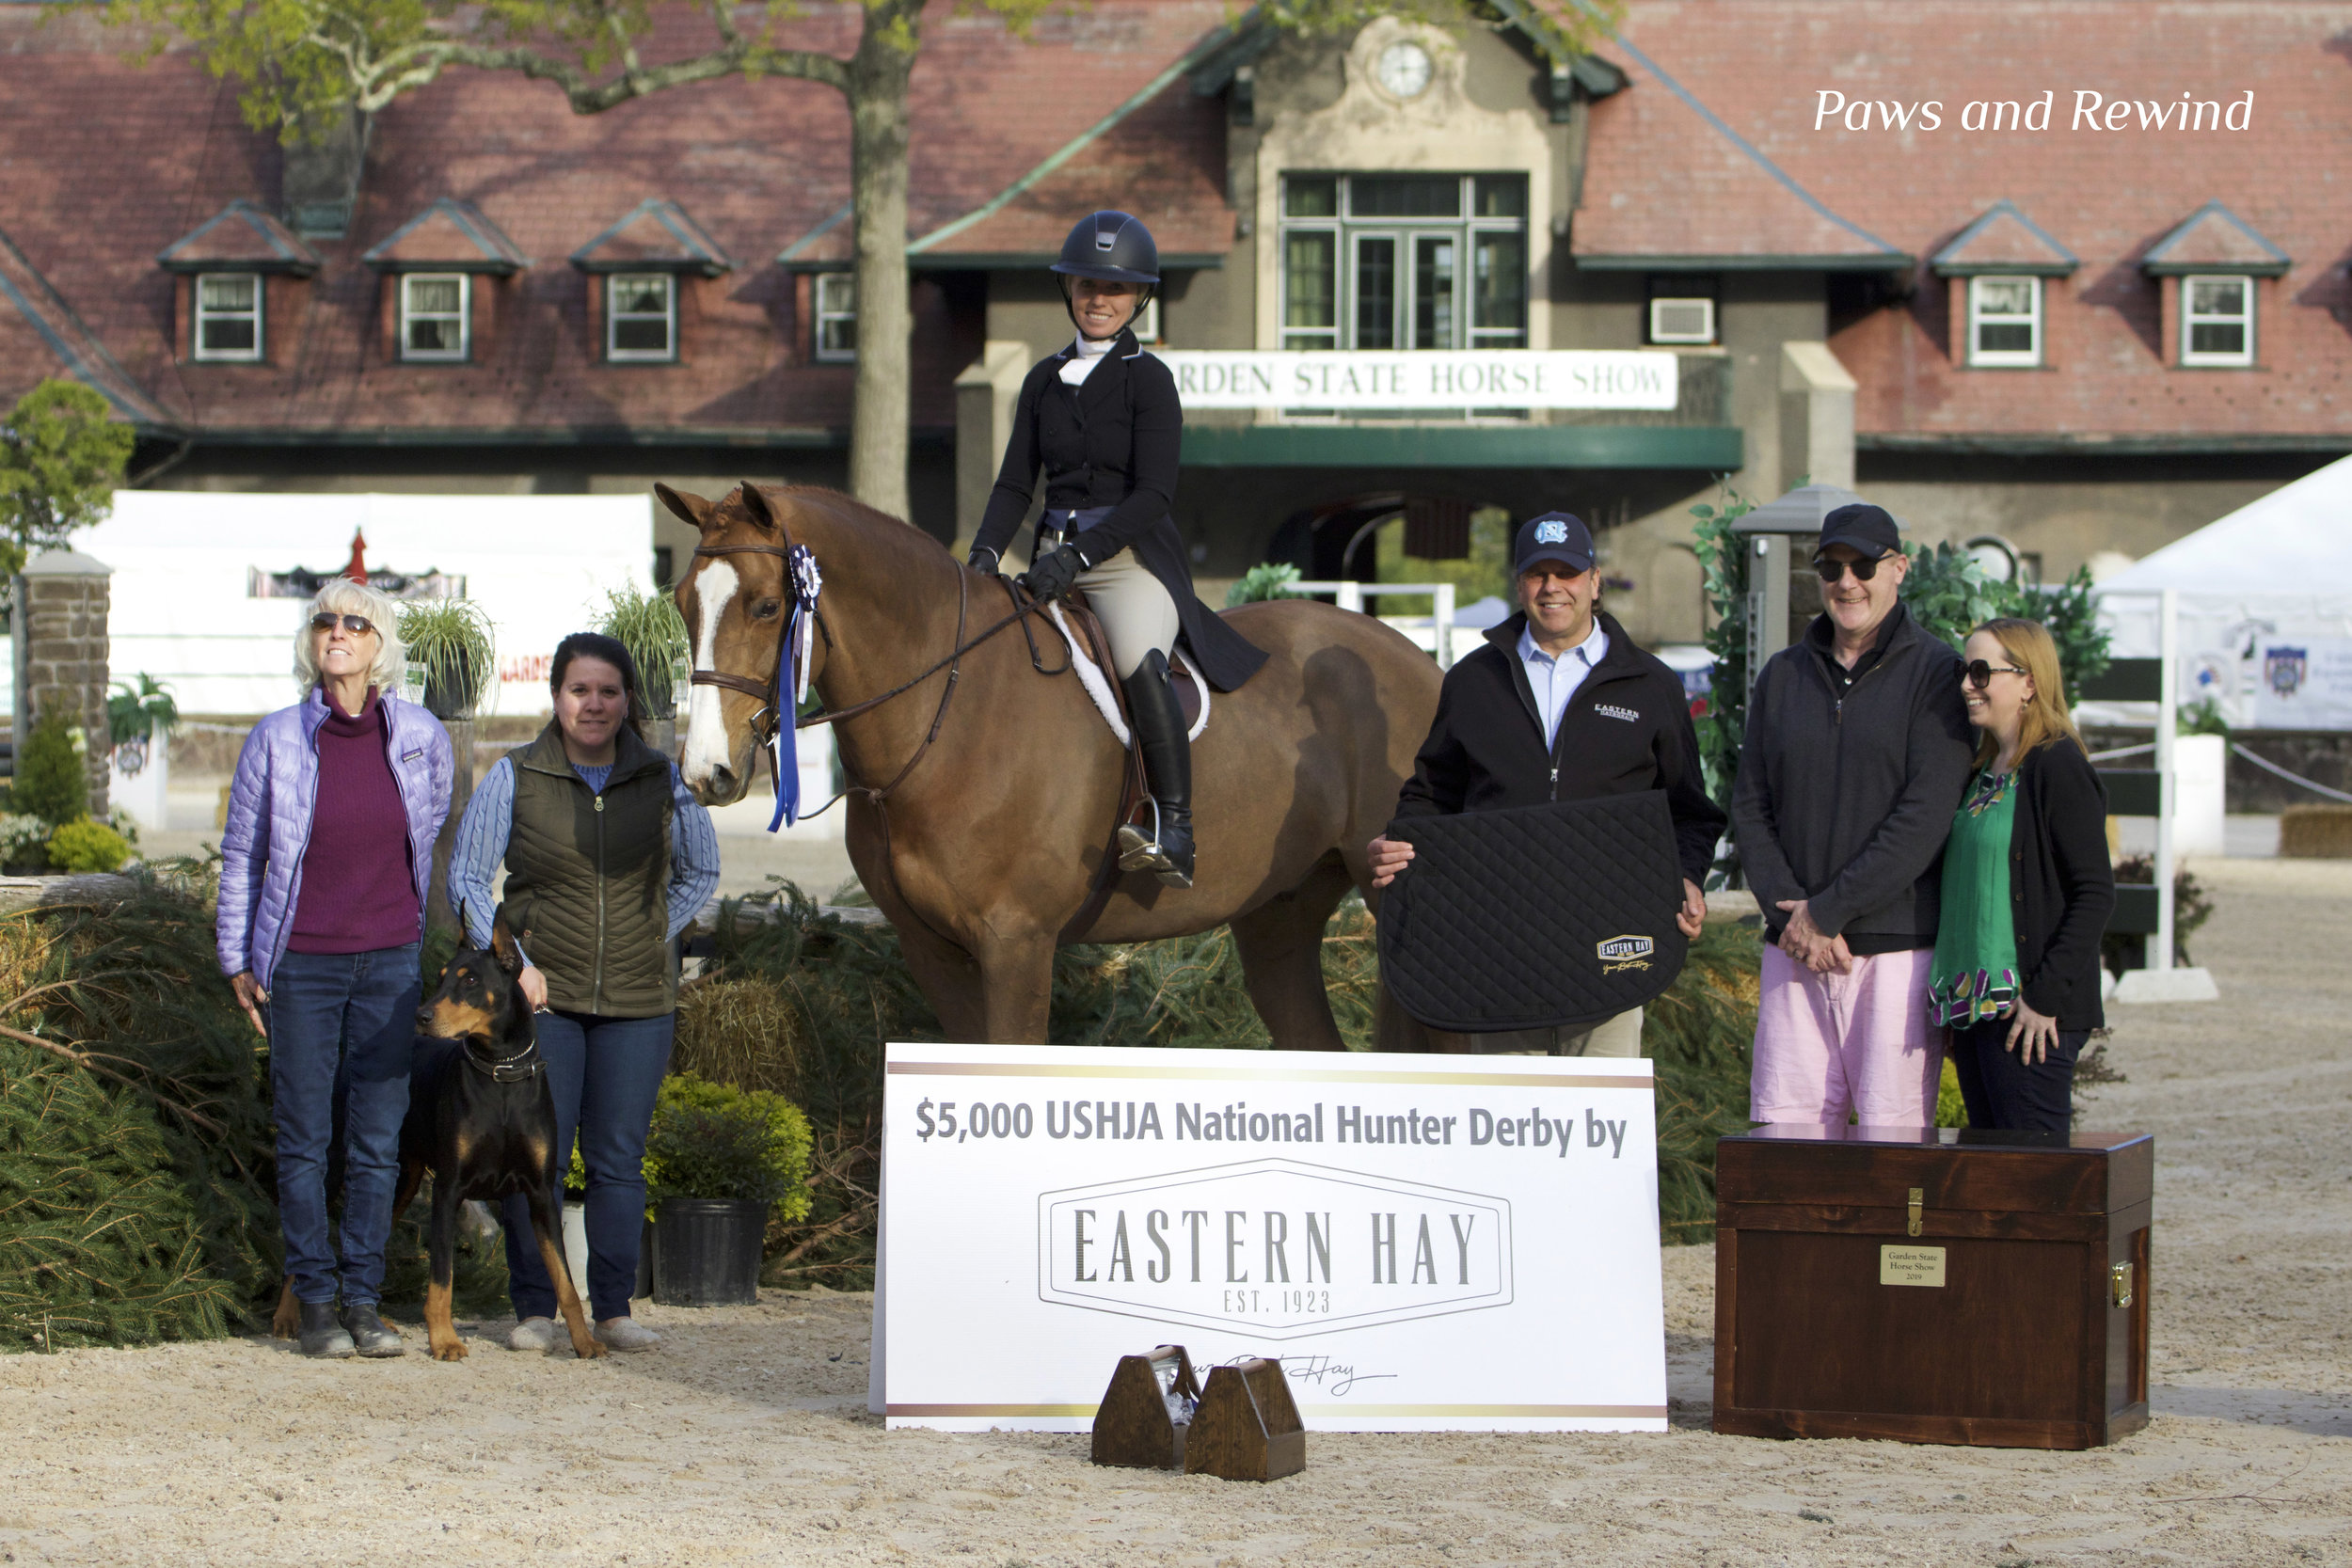 Kathy Kunsman, Eric the Doberman, Lauren Sabo, Eleanor Kunsman and Beckham, Chris Johnson of Eastern Hay, and John and Ashley Buehler with Seahorse Tack Trunks. Photo by Paws and Rewind